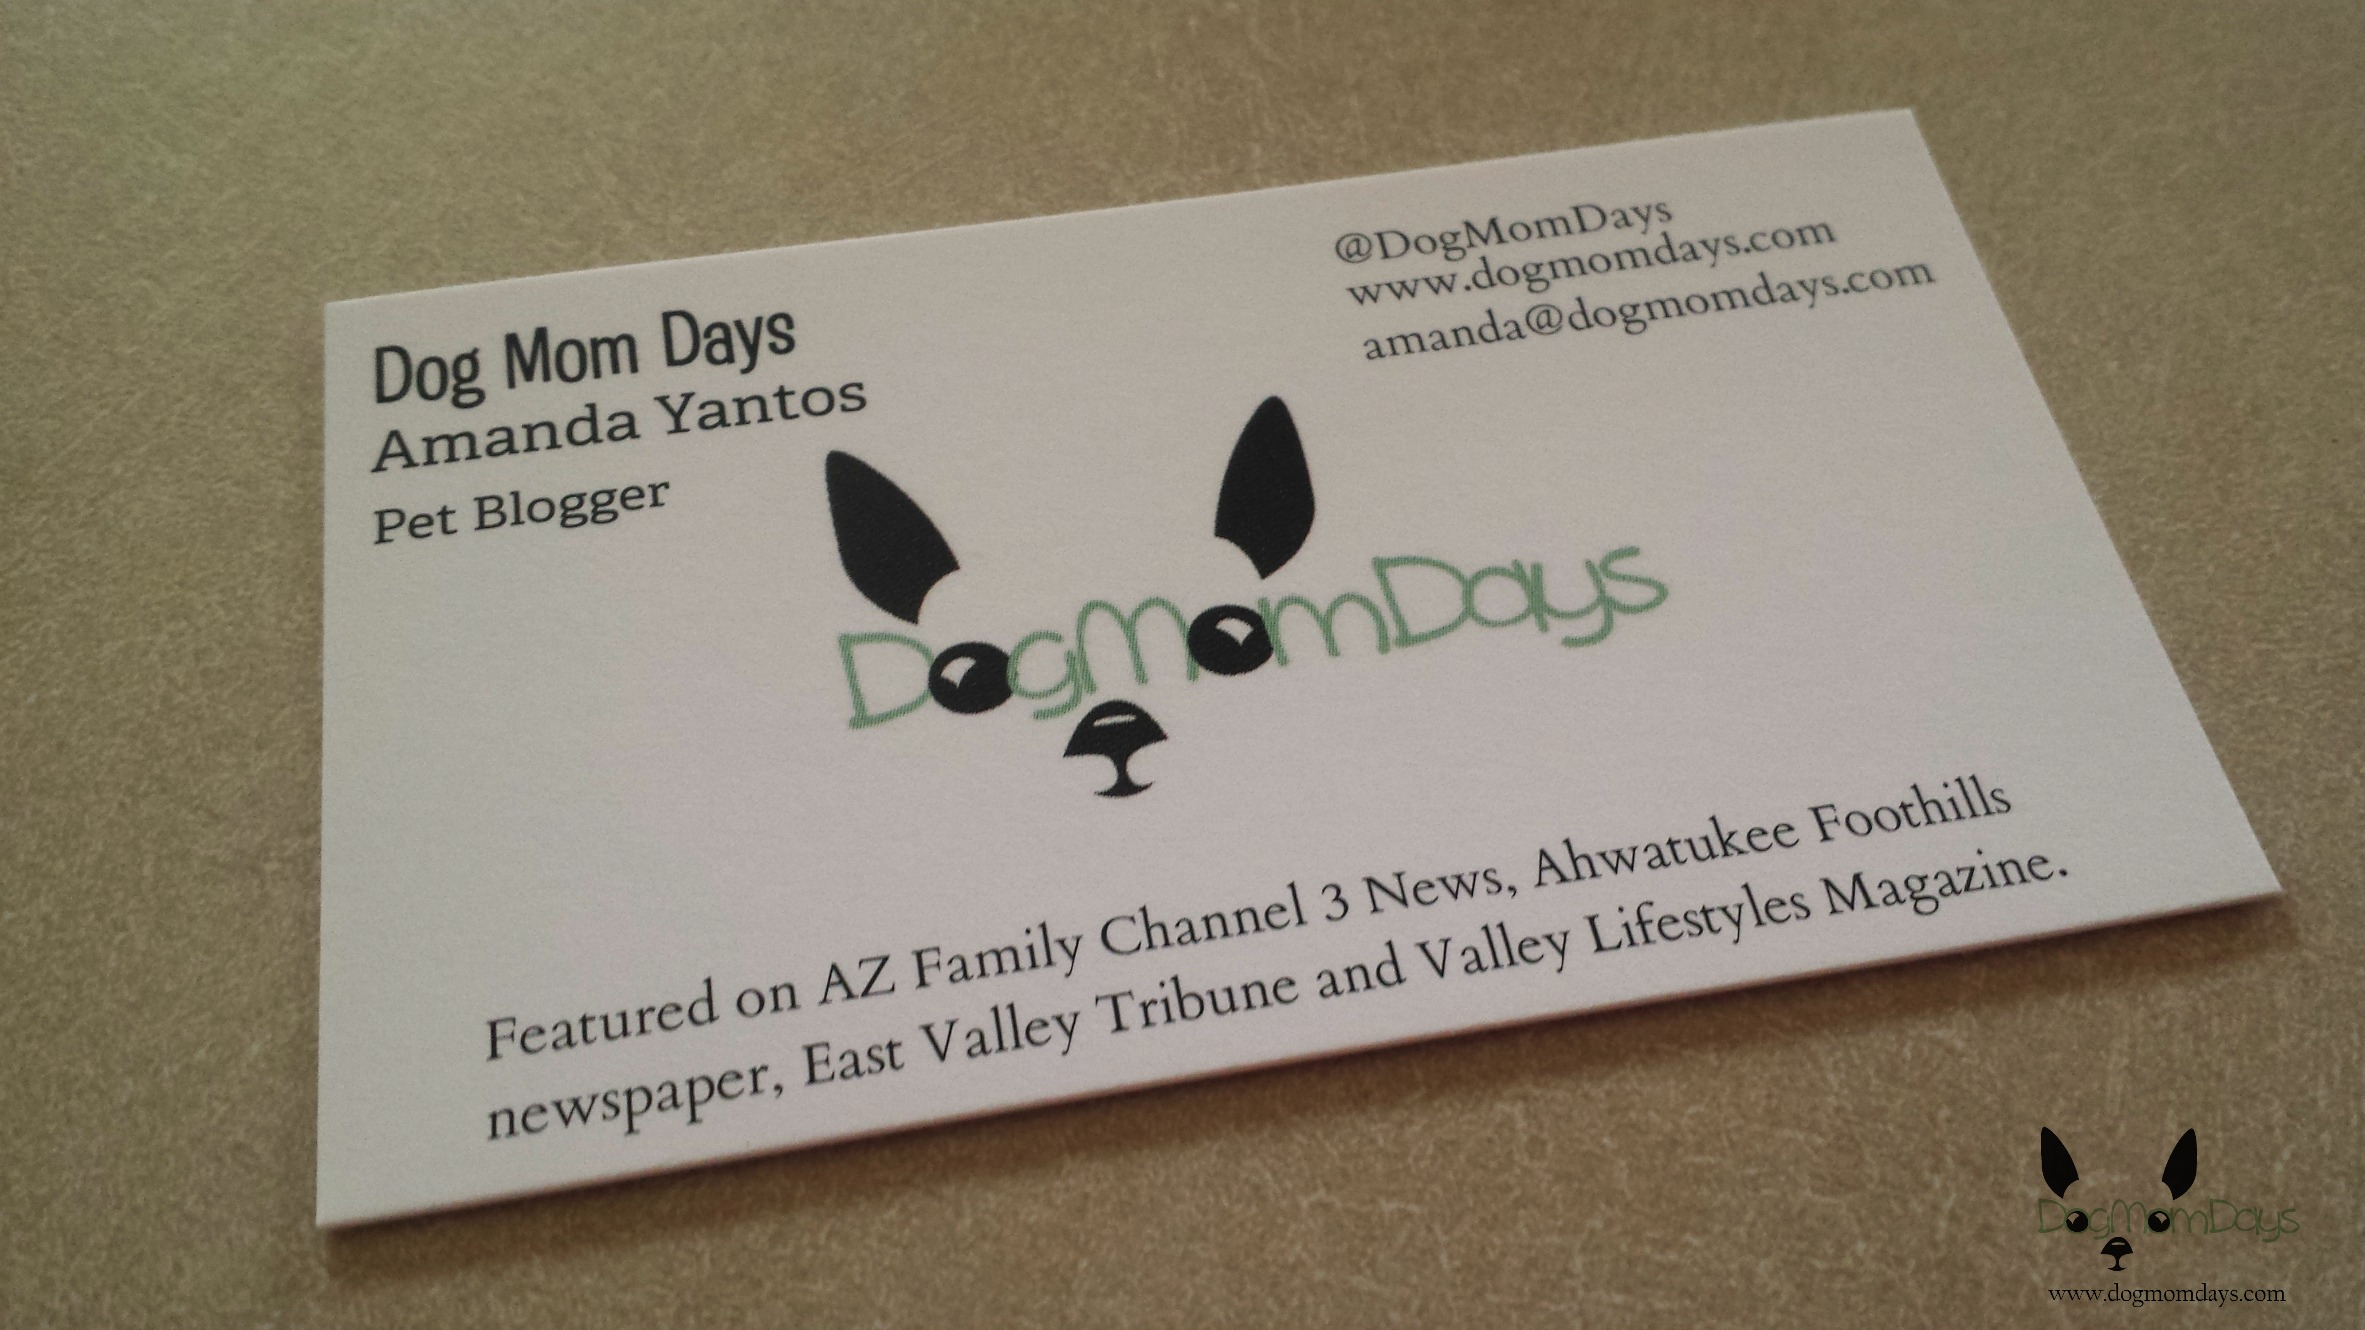 My small business cards.  I ordered two styles and sizes, but these have my media honors on them!